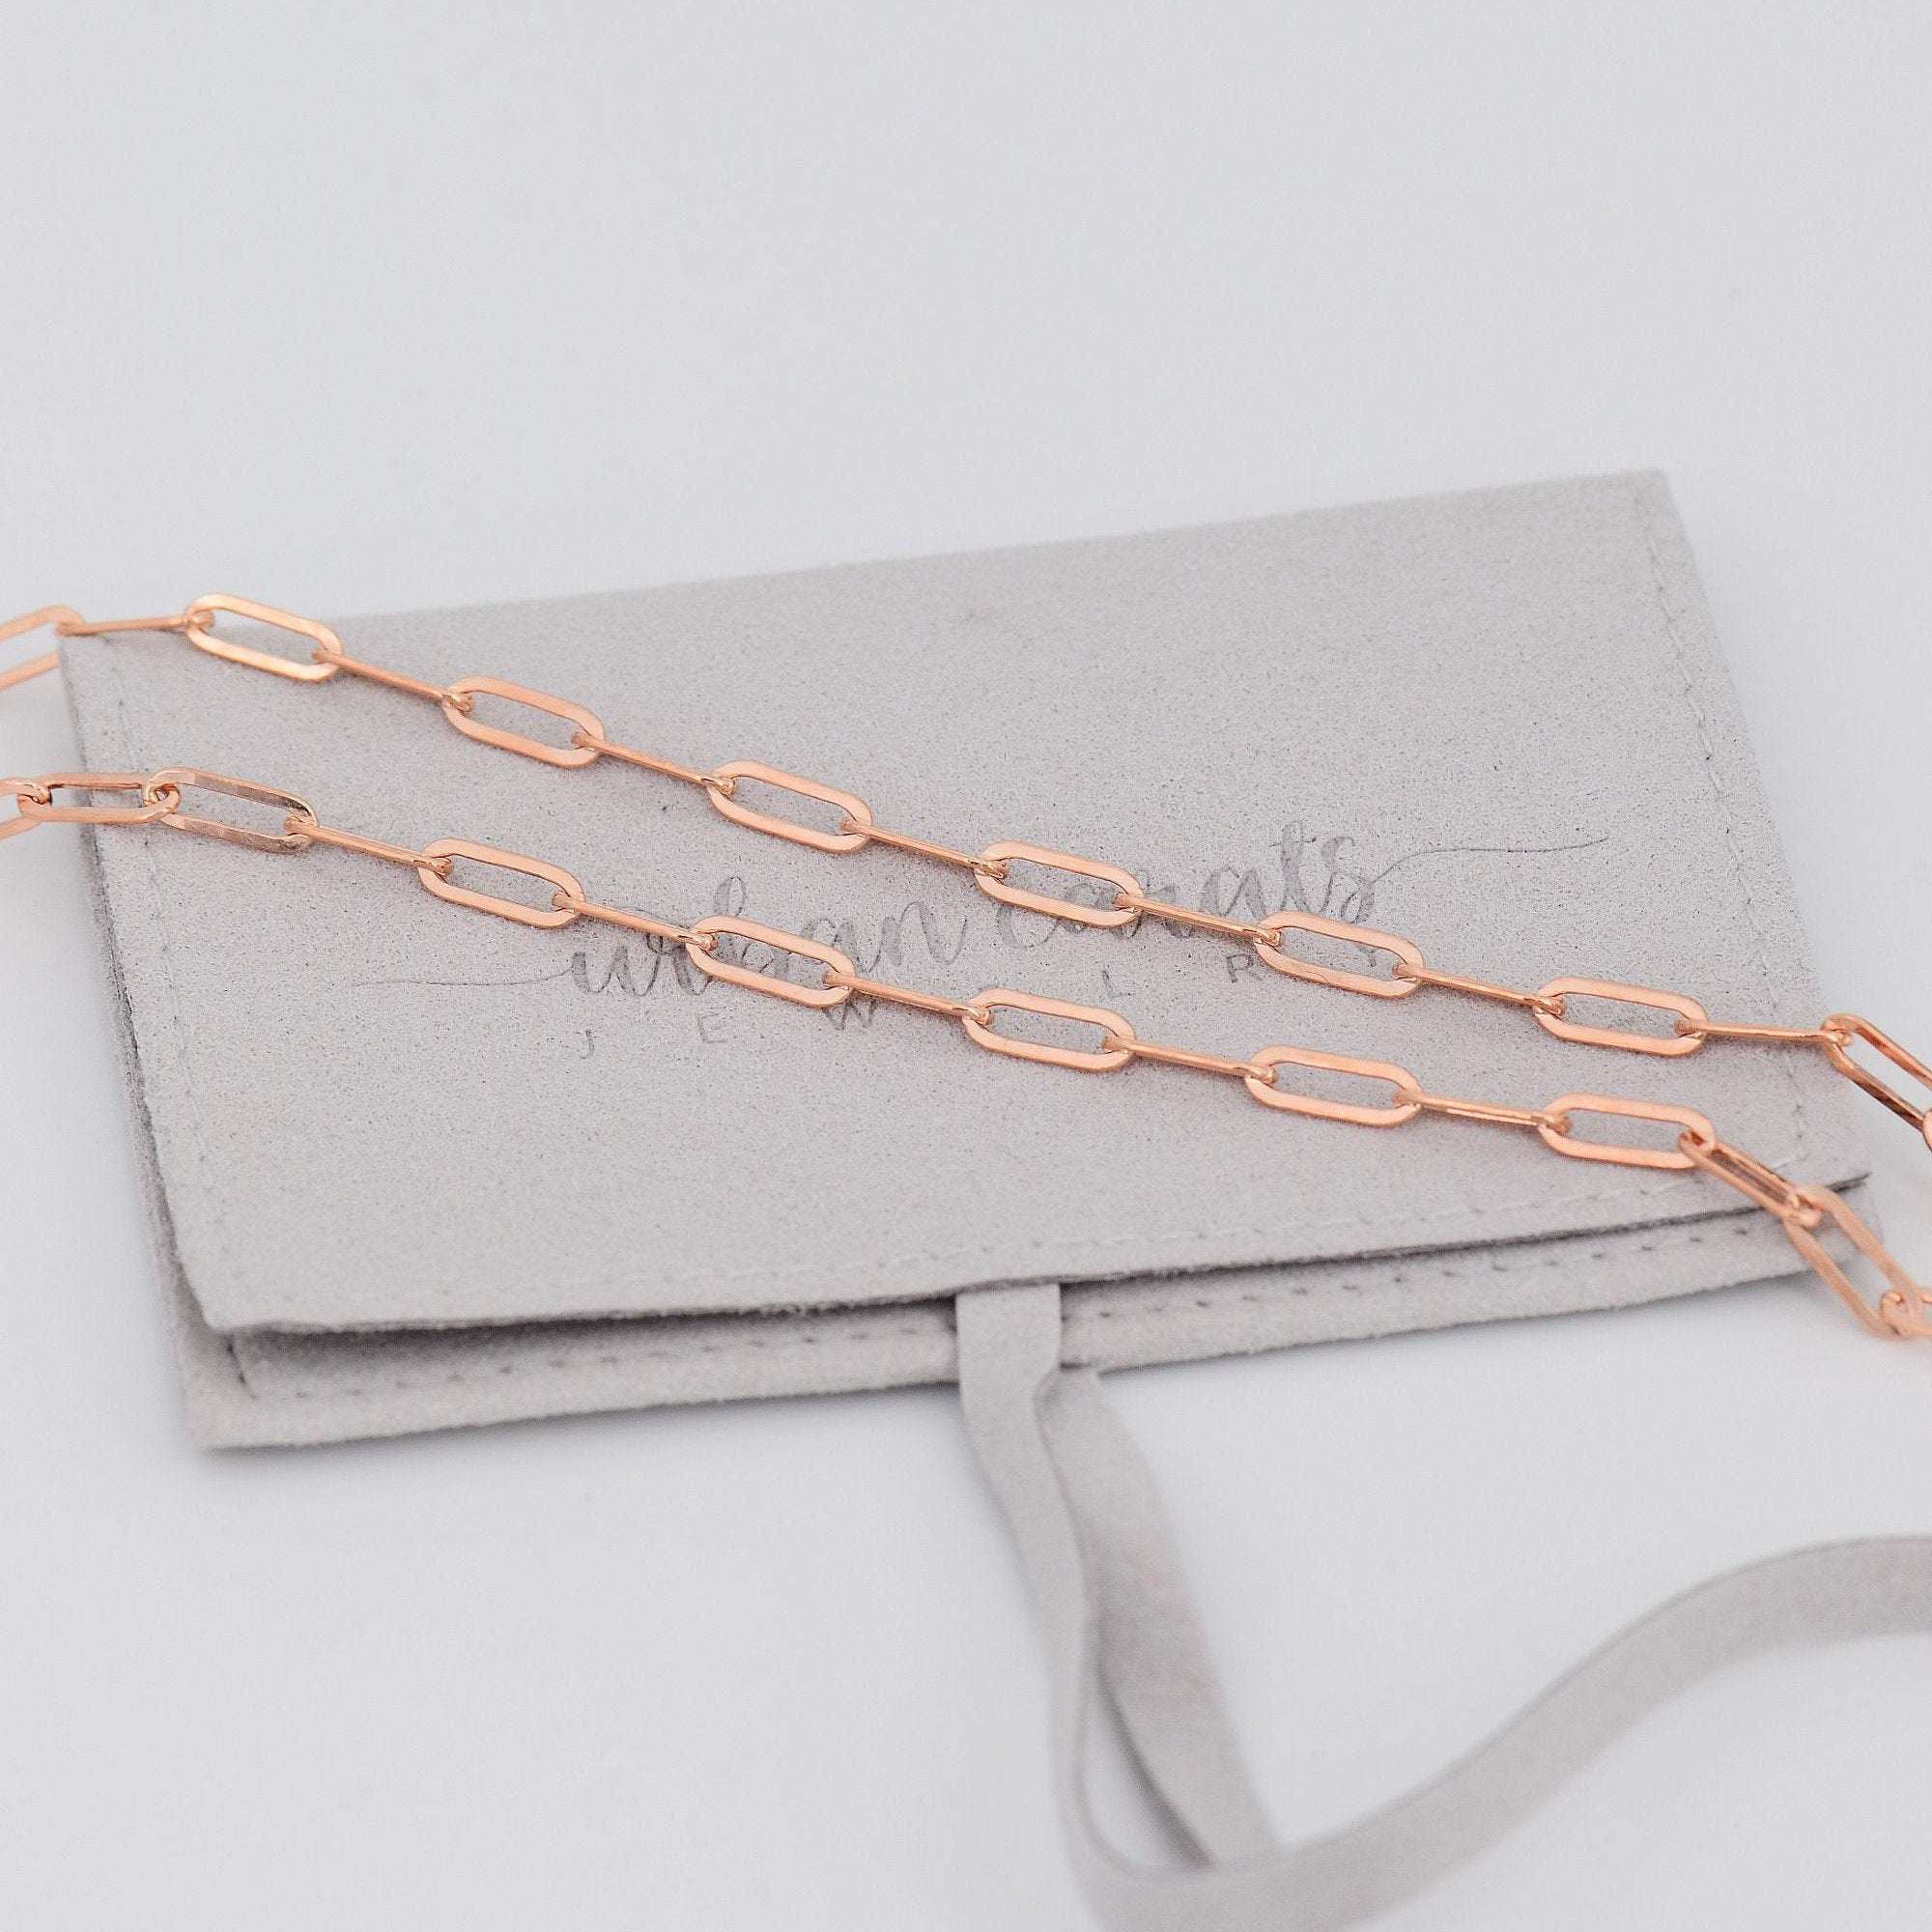 Paperclip Chain Rose Gold Filled Necklace,Rectangle Link Chain Gold Layering Choker Collar Oval Elongated Link Chain Necklace Fashion 14k